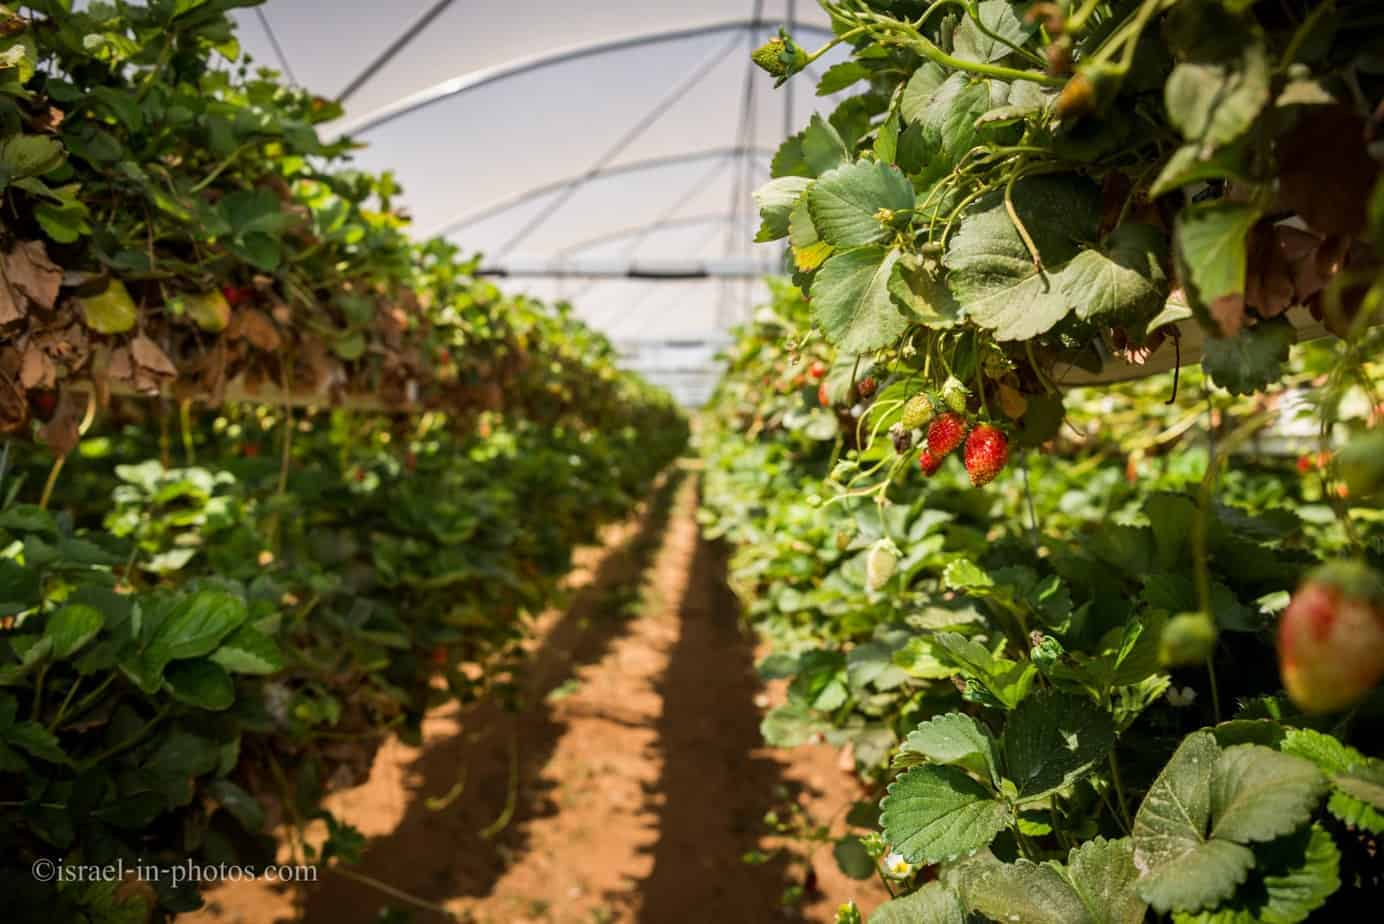 Strawberries growing in air at a farm in Israel